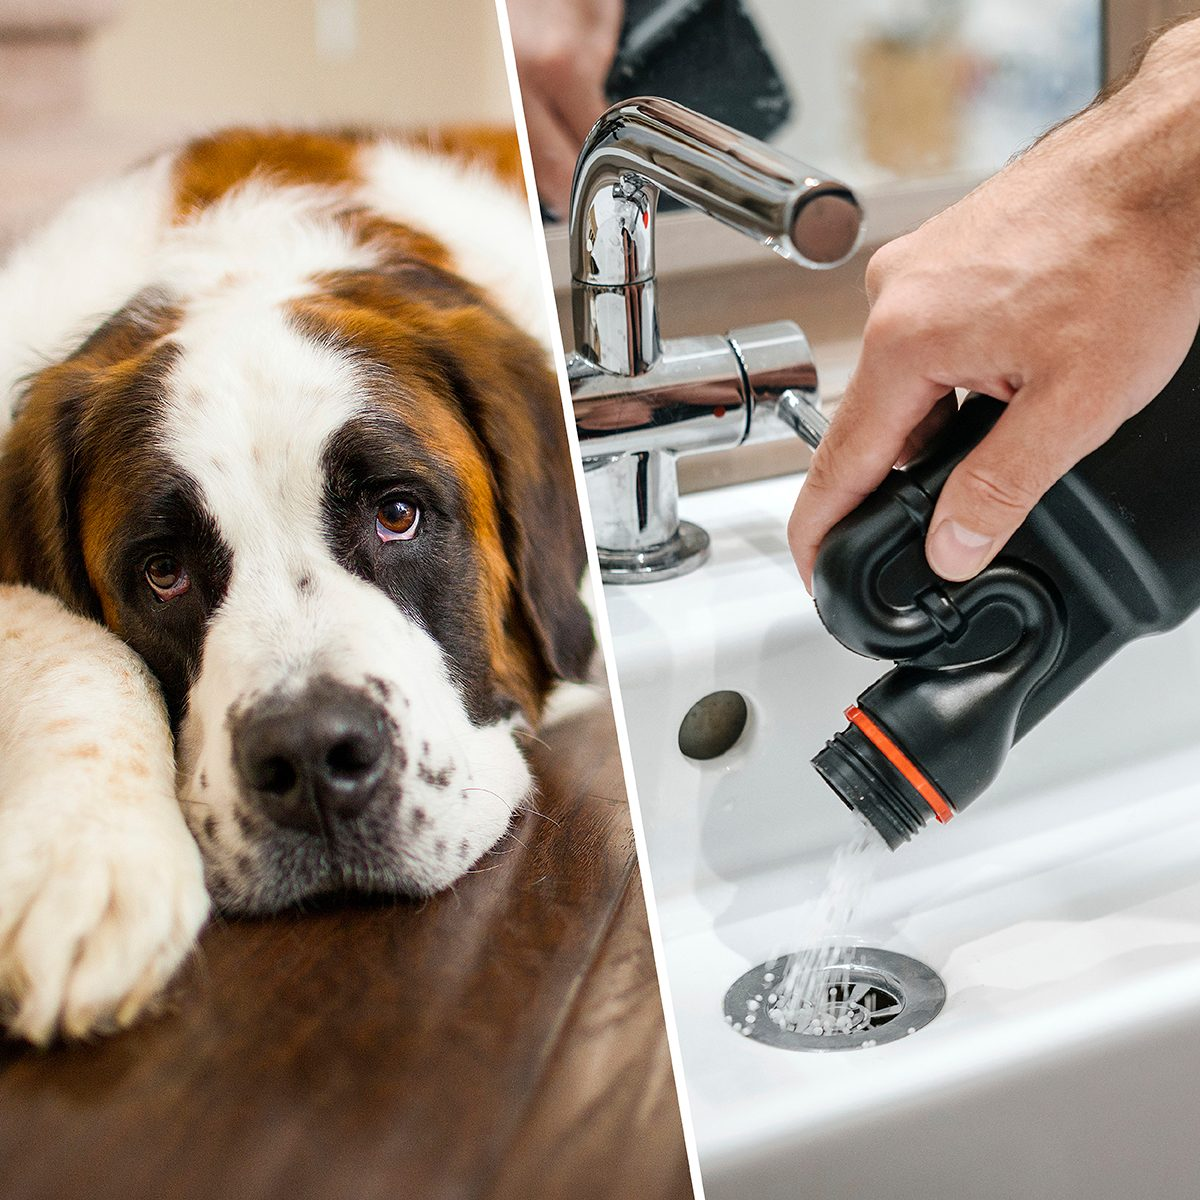 A tired Saint Bernard dog relaxes on a hardwood floor indoors./Removal of blockage in the sink, the hand of a man with a bottle of a special remedy with granules. Clean the blockages in the bathroom with chemicals.